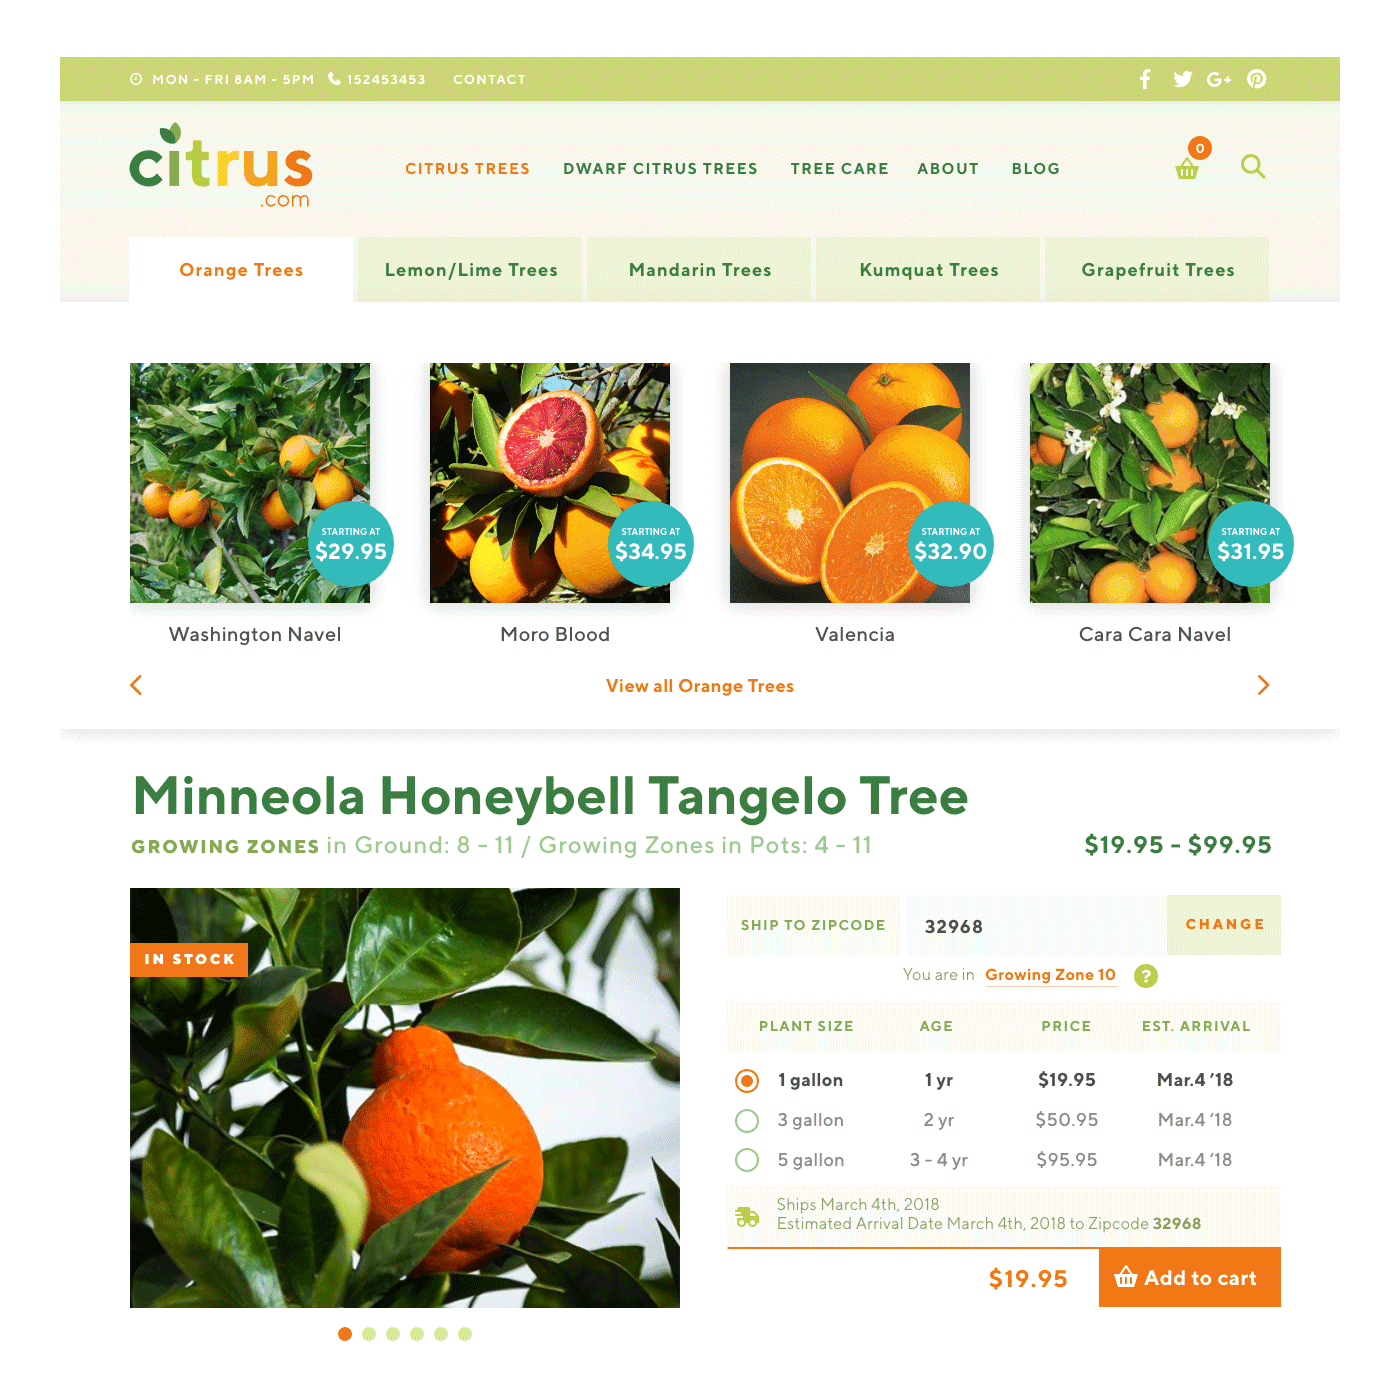 Fragment of the Citrus.com product webpage template design